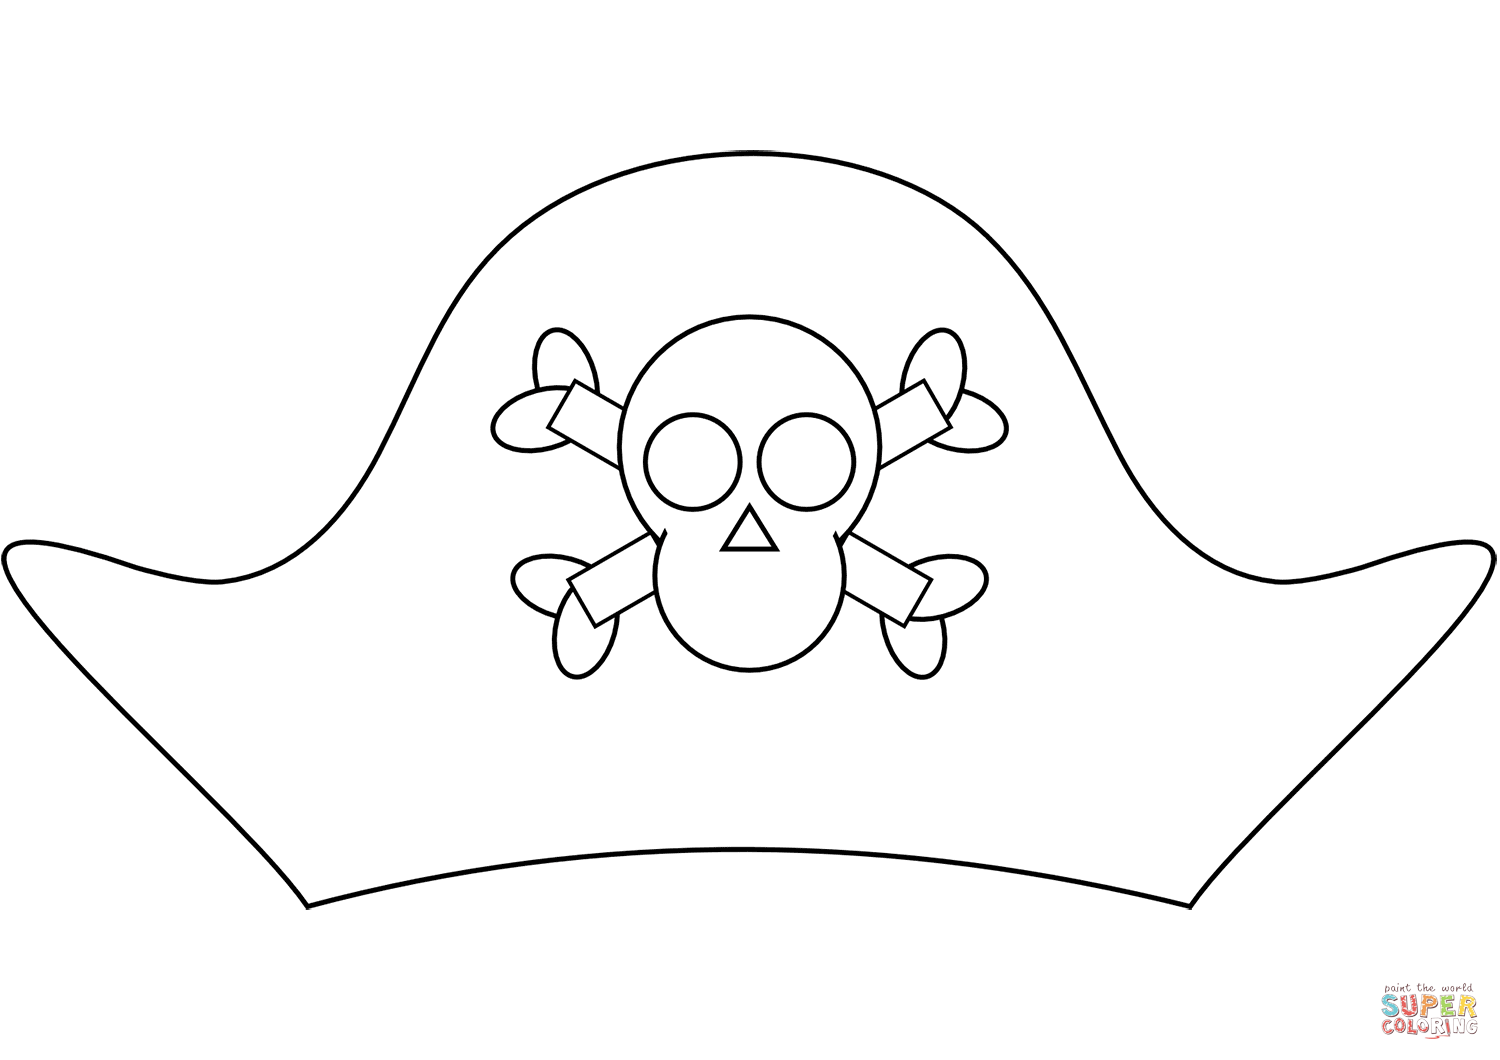 Pirate Hat Coloring Page Free Printable Coloring Pages Pirate Coloring Pages Pirate Hats Coloring Pages